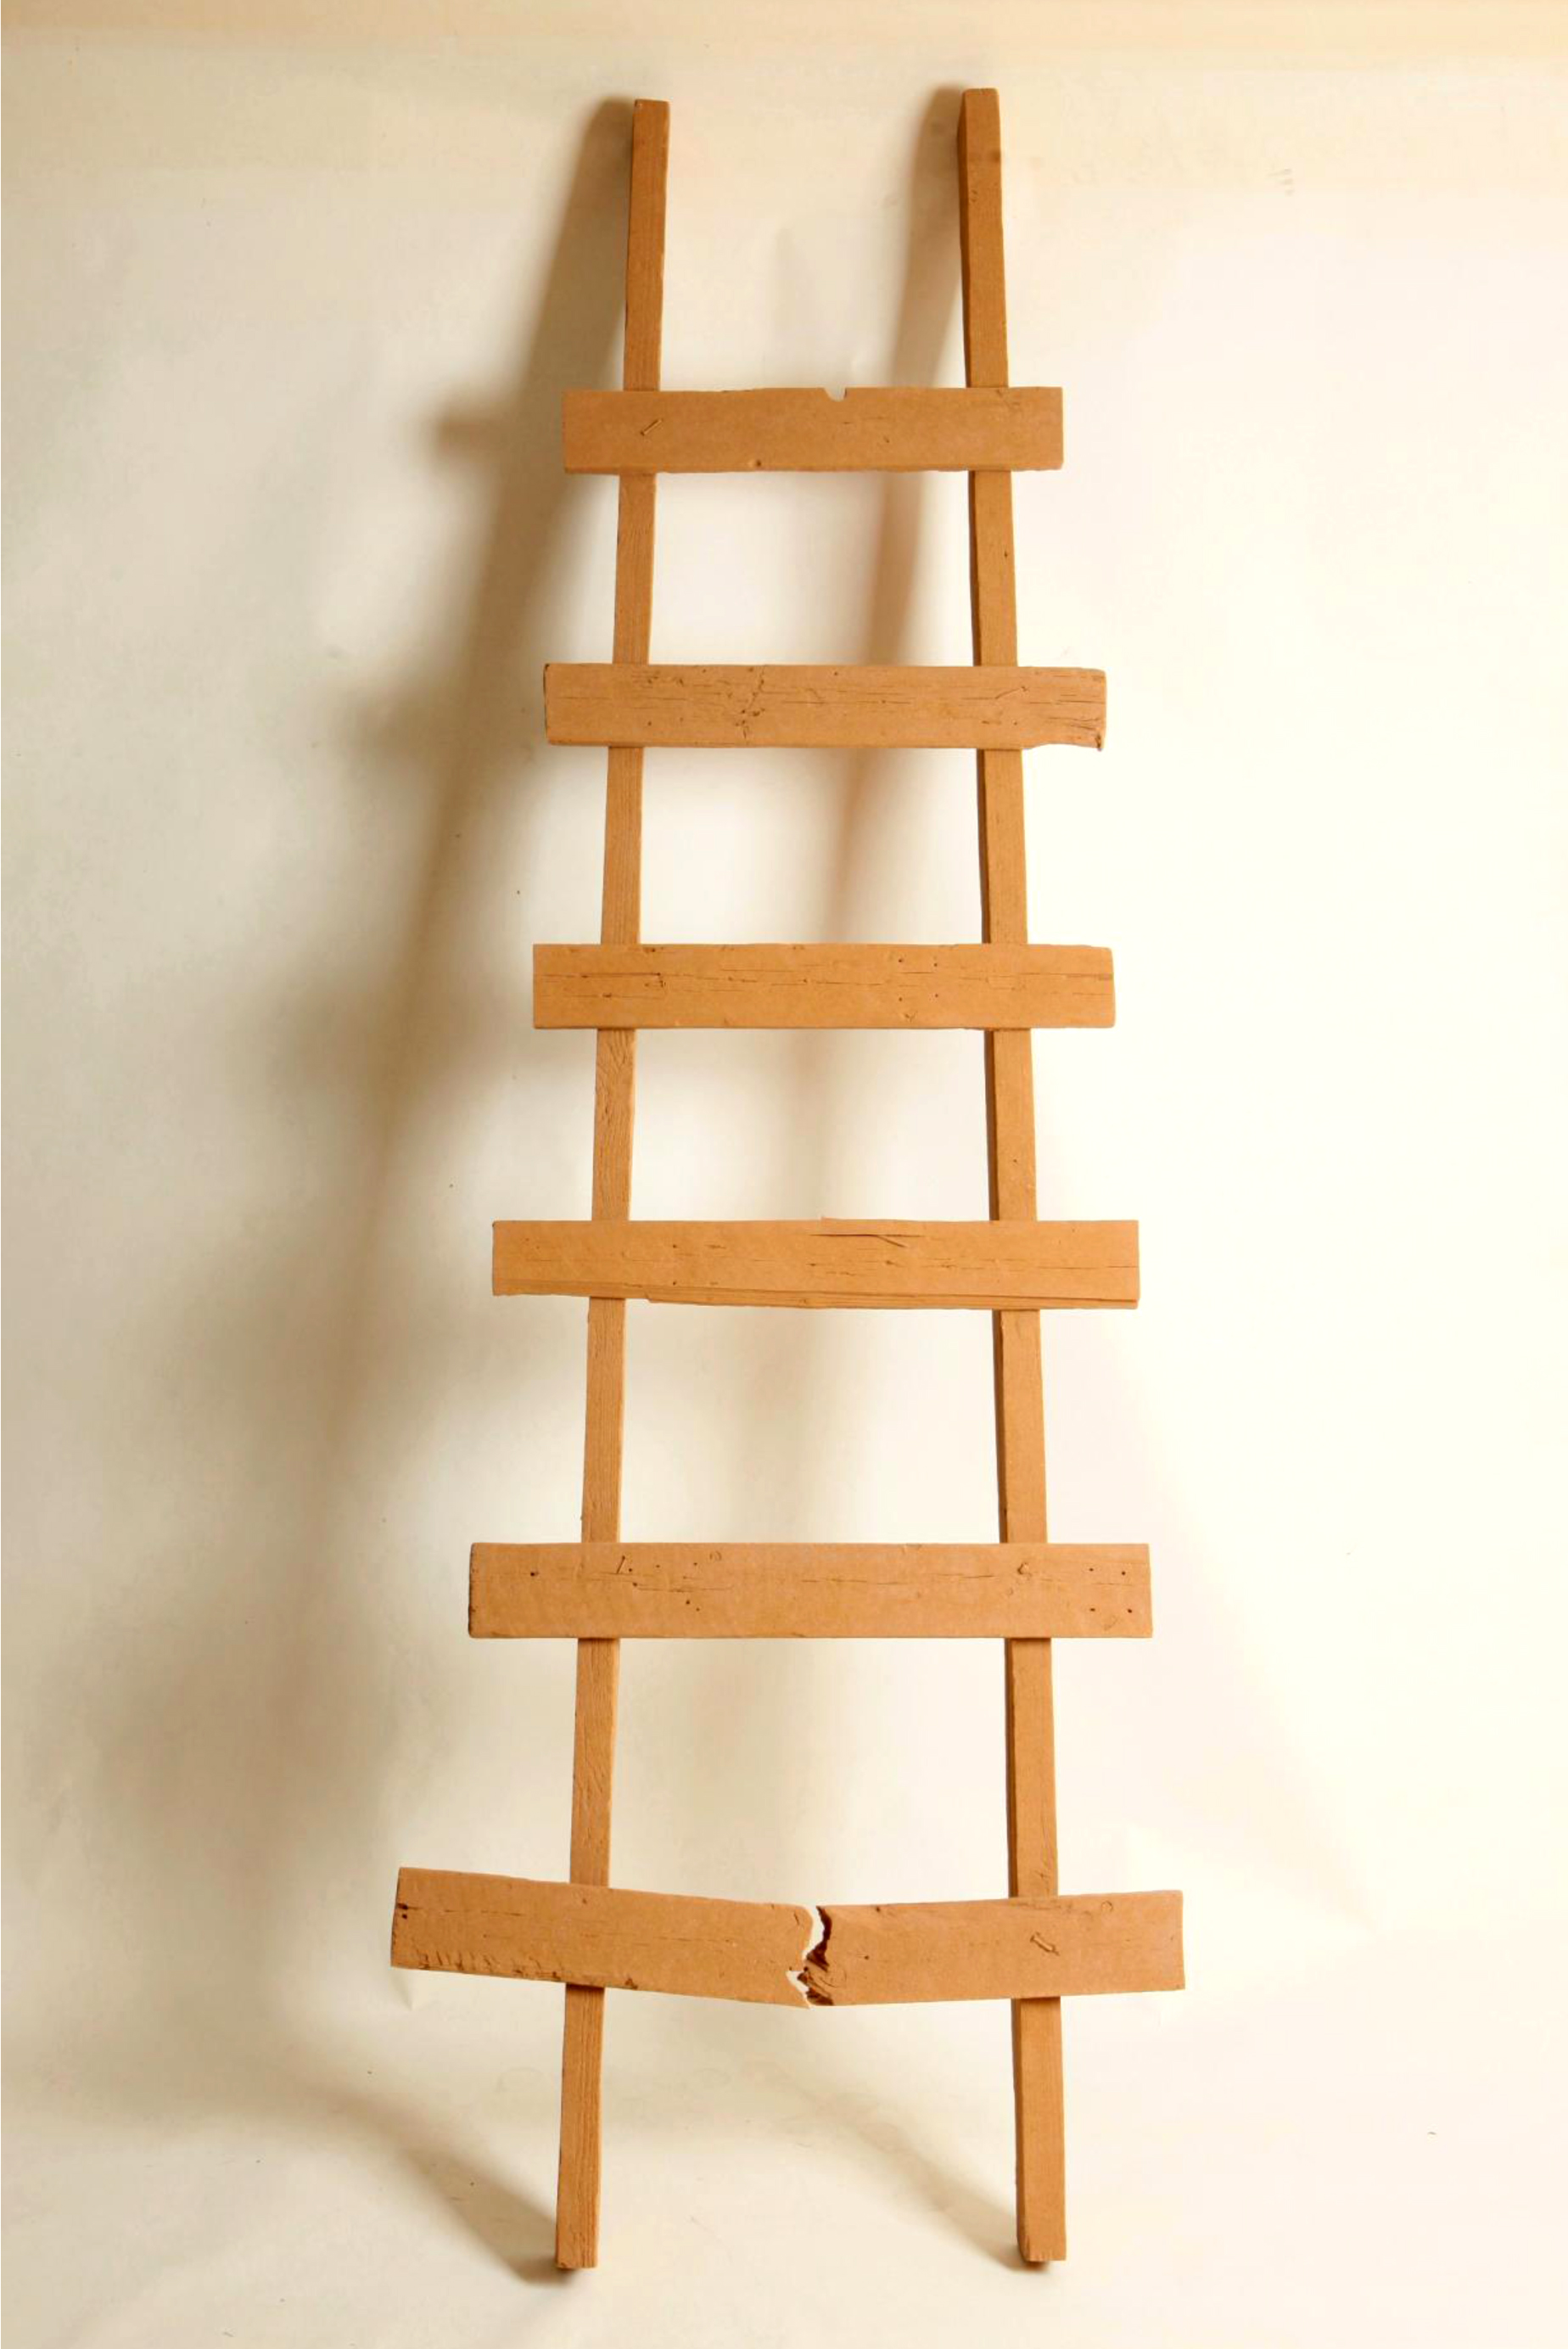 The Ladder  by Haimi Fenichel, cast sand. Photo by Elad Sarig, 2010, courtesy of the artist.